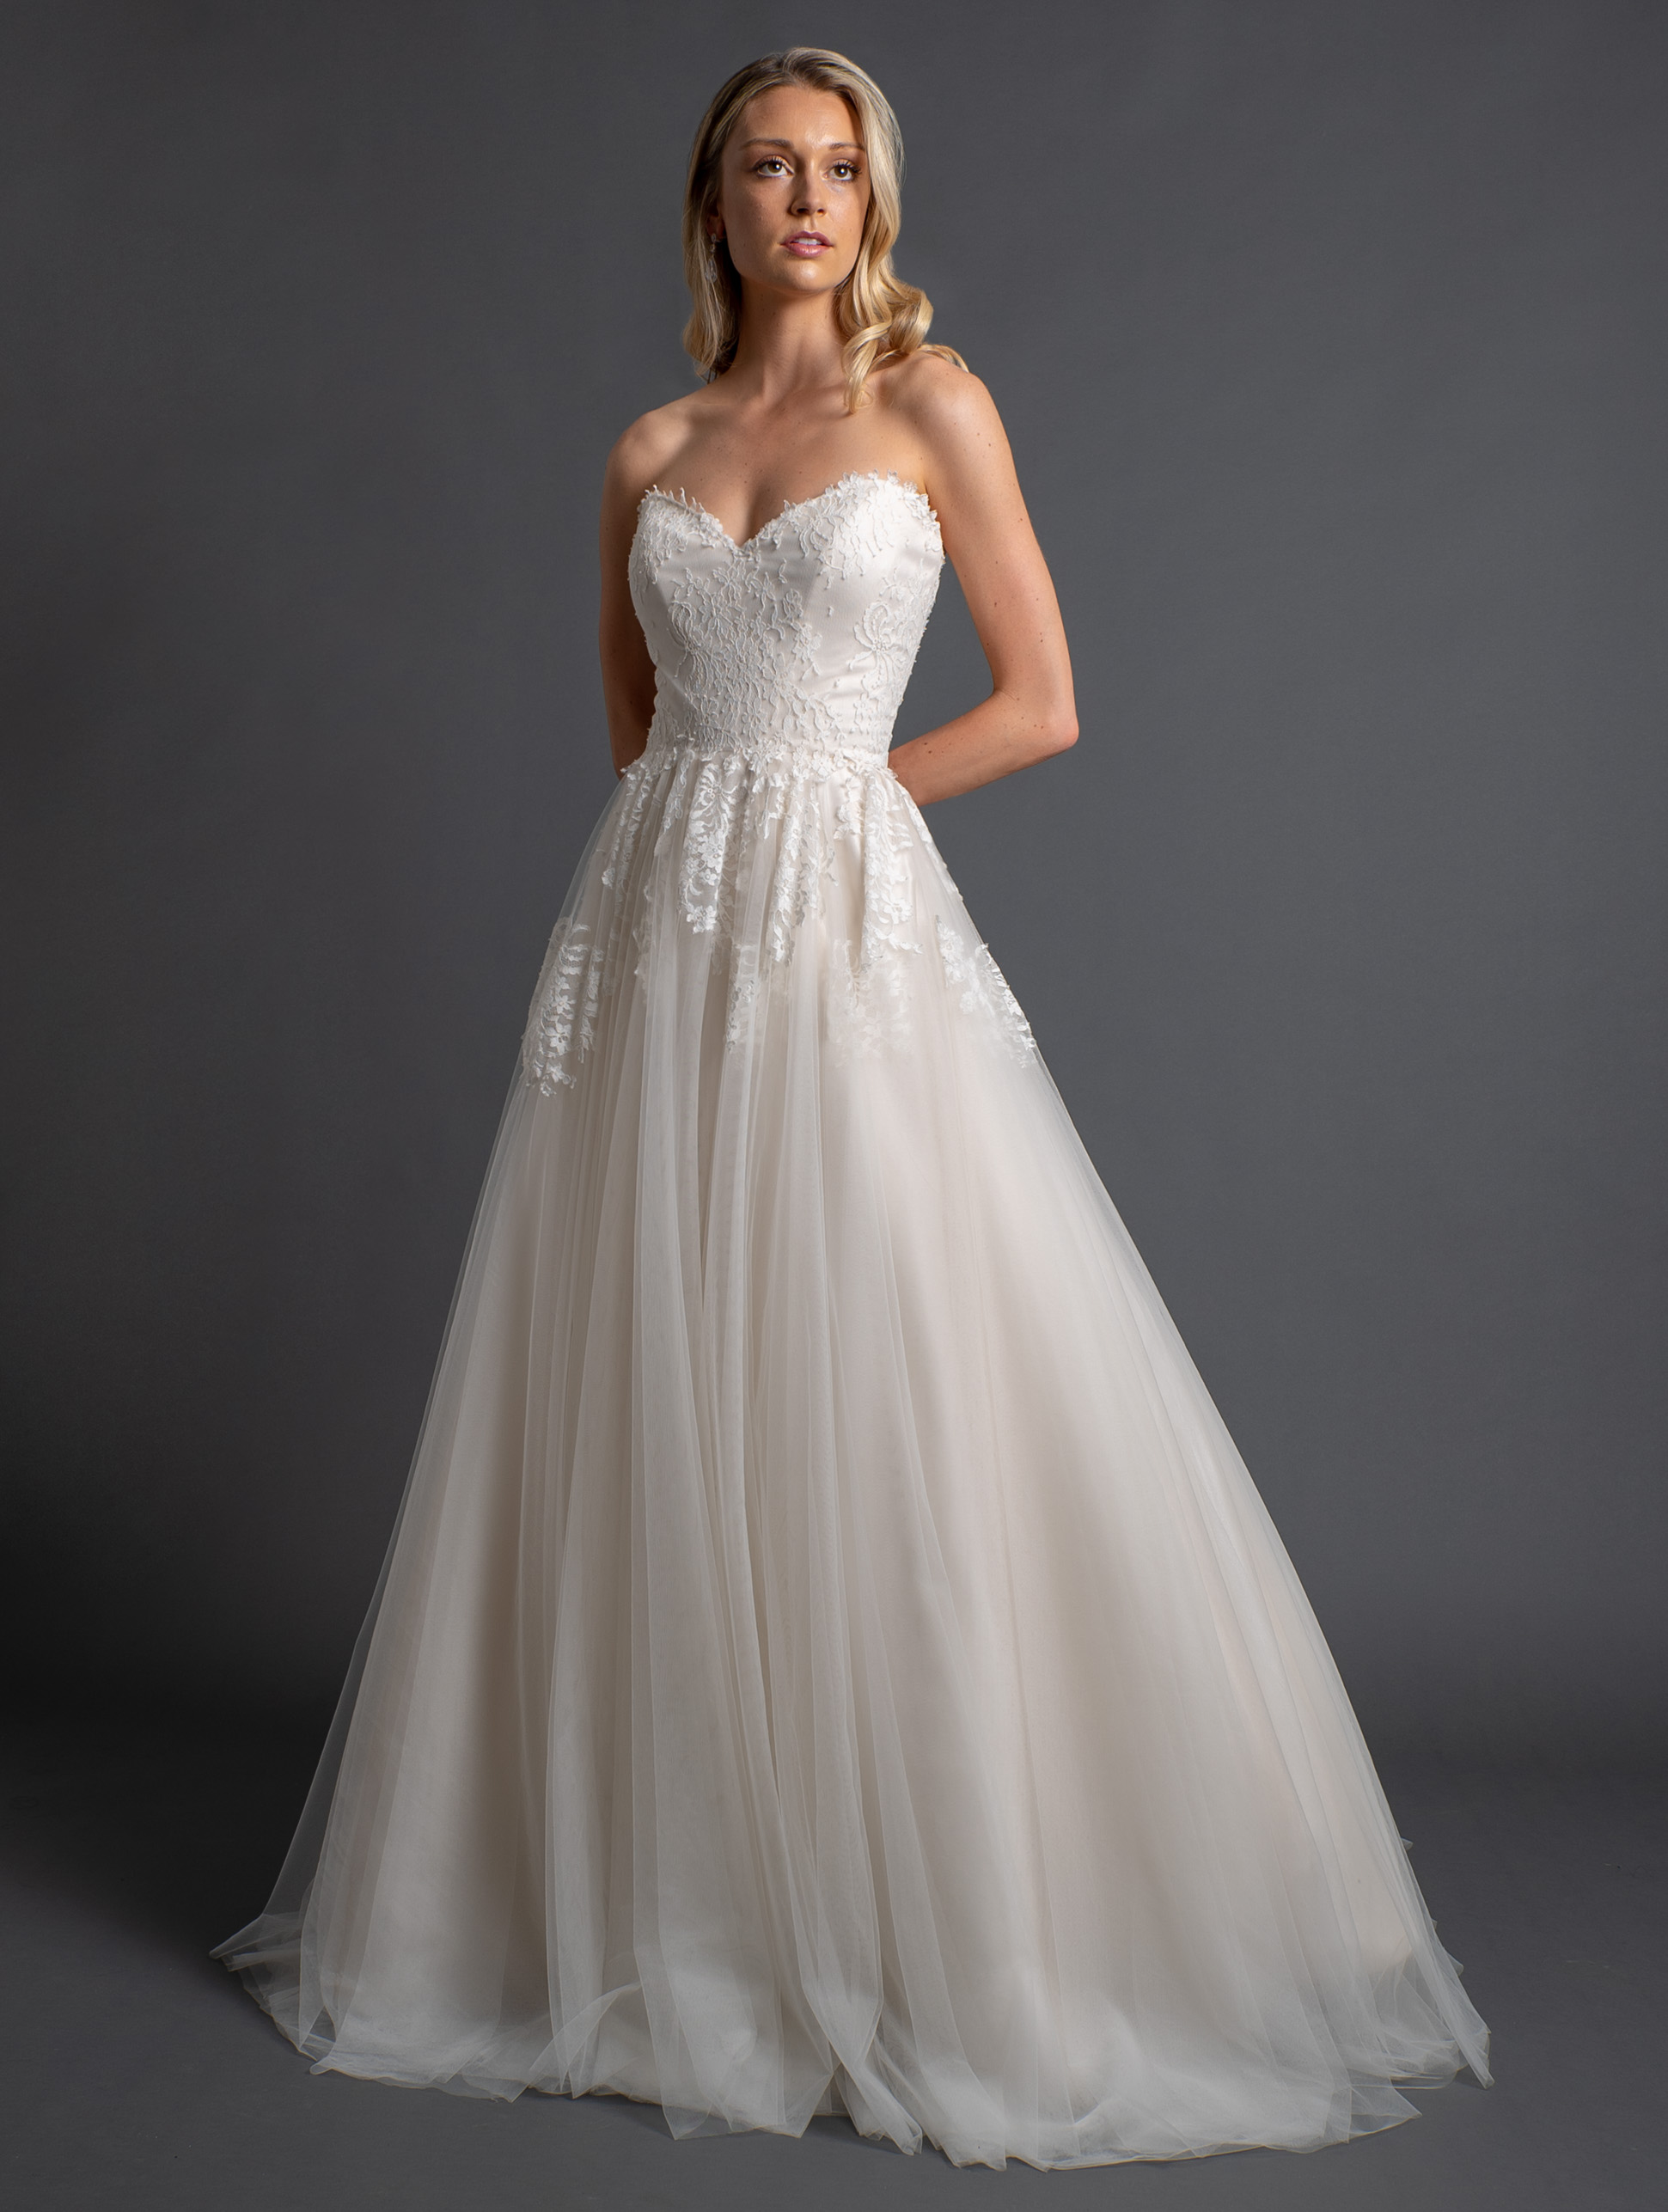 Strapless Lace Wedding Dress with Full A-line Skirt by Modern Trousseau. Made in the USA by Modern Trousseau.